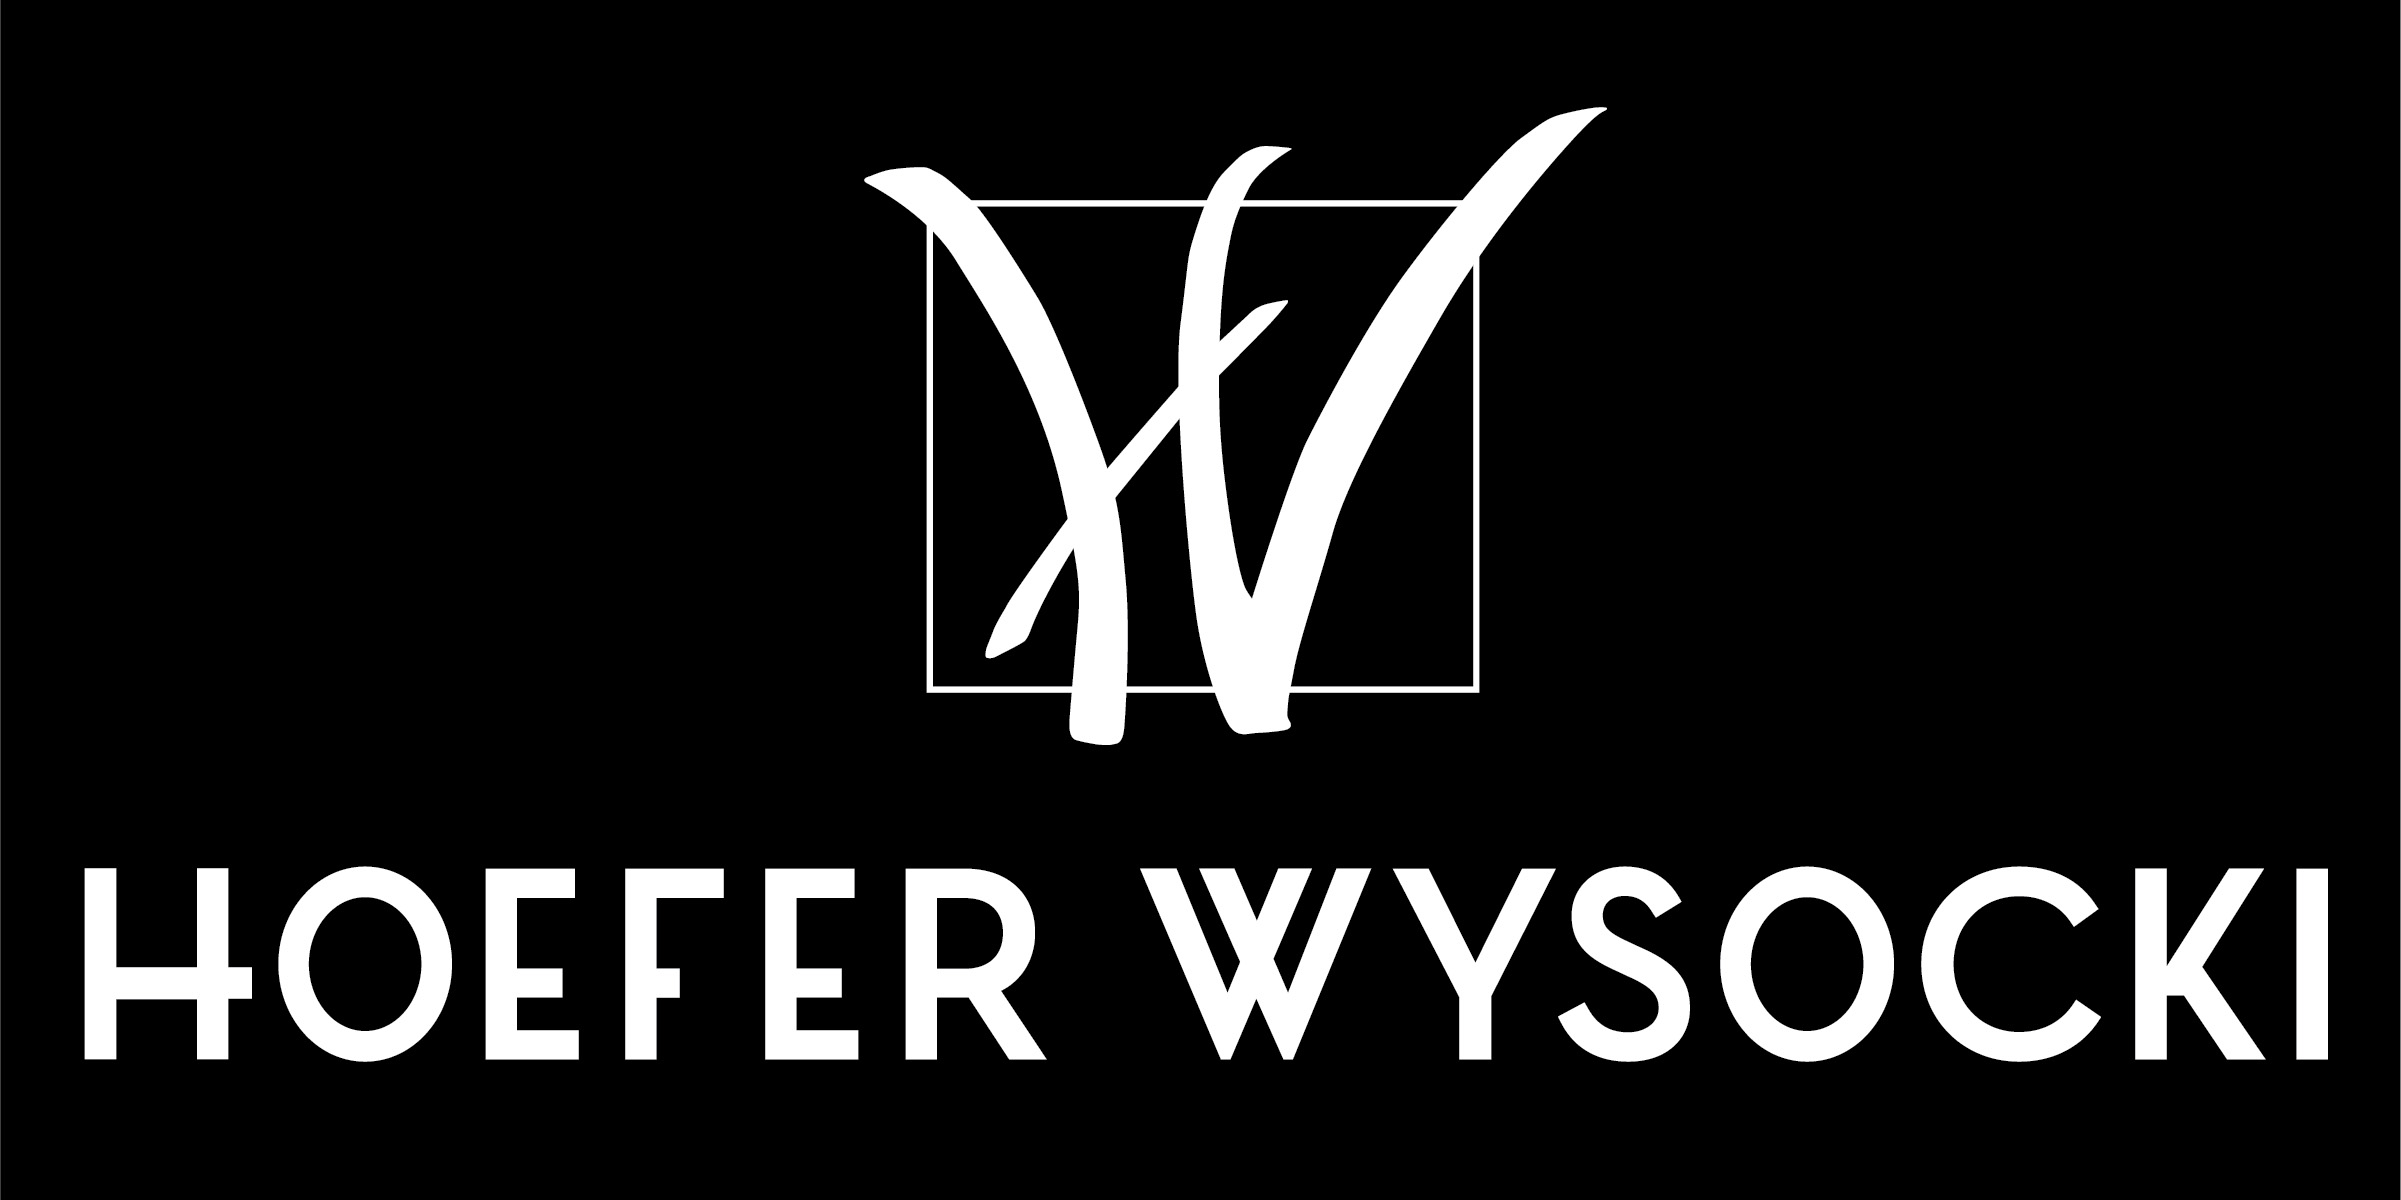 2019 Fellows Dinner - Hoefer Wysocki logo